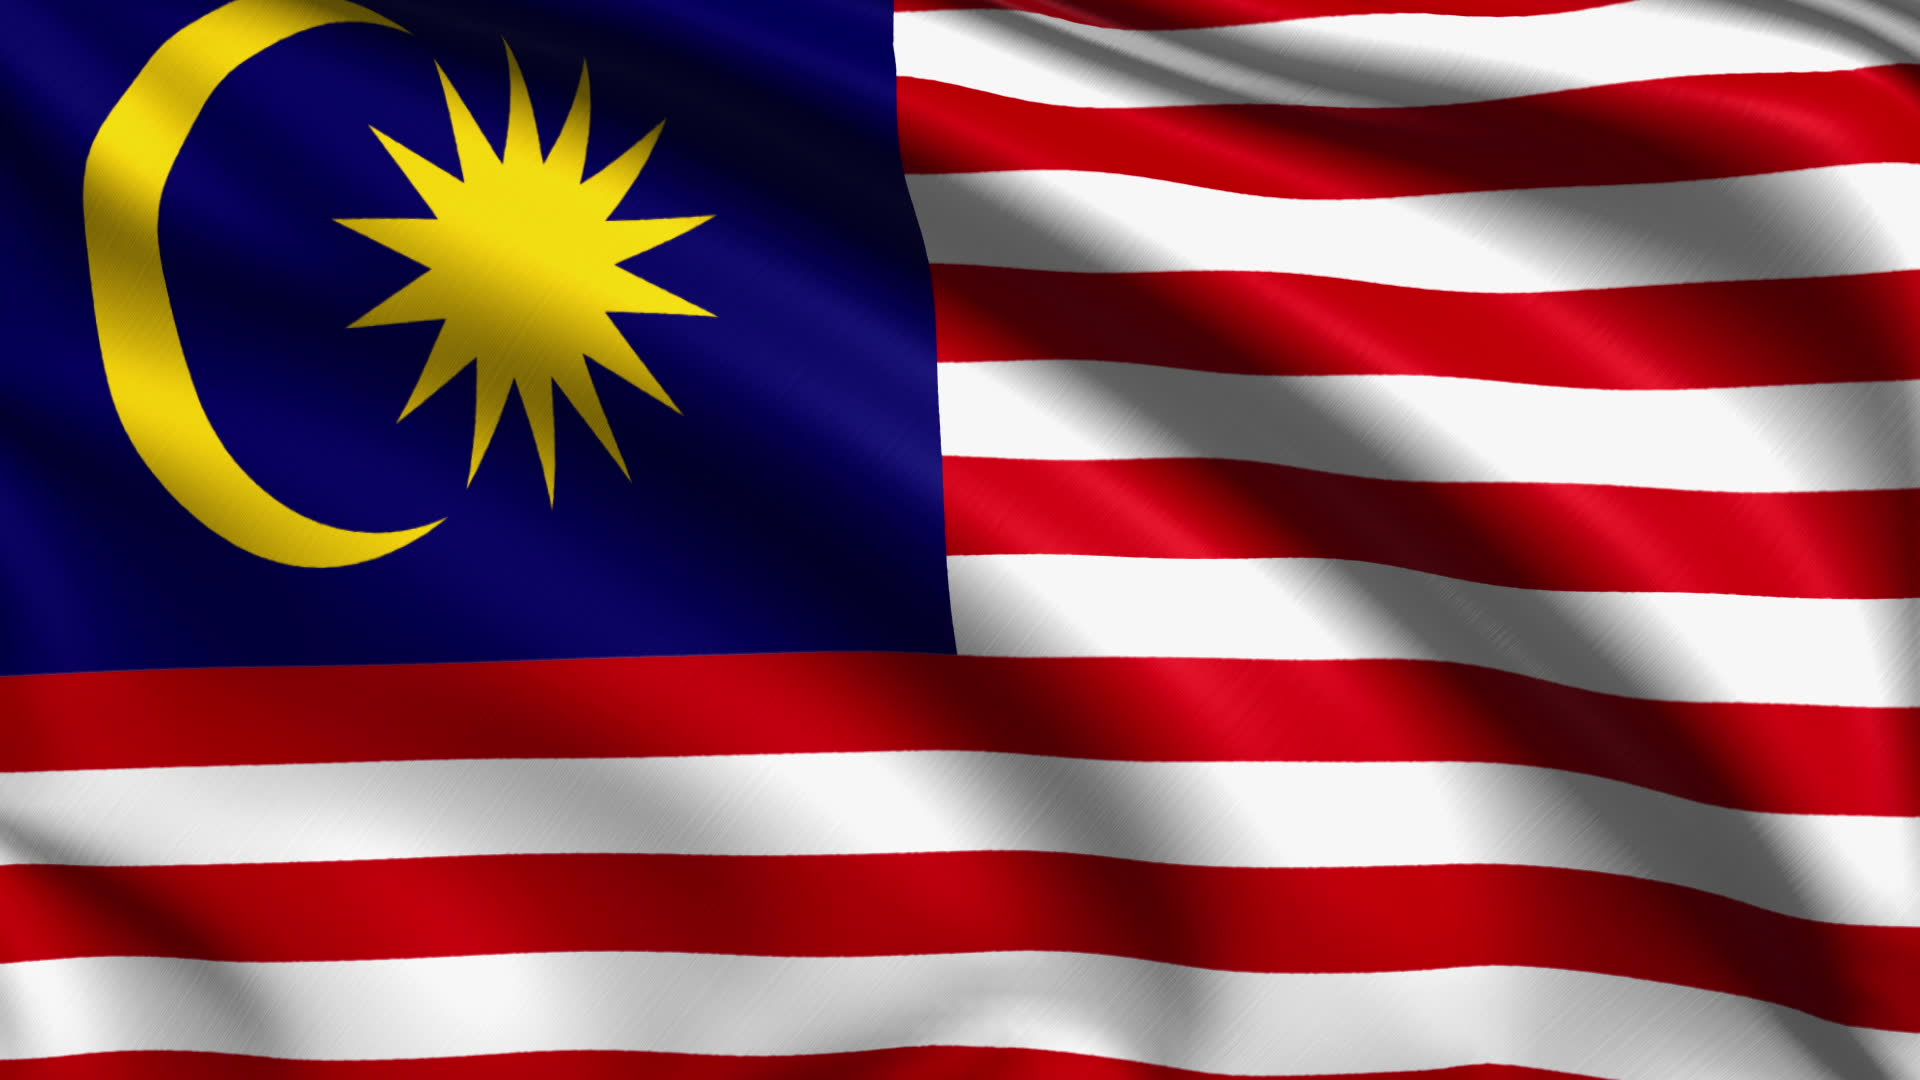 Popular-street-food-venuerific-blog-malaysia-flag